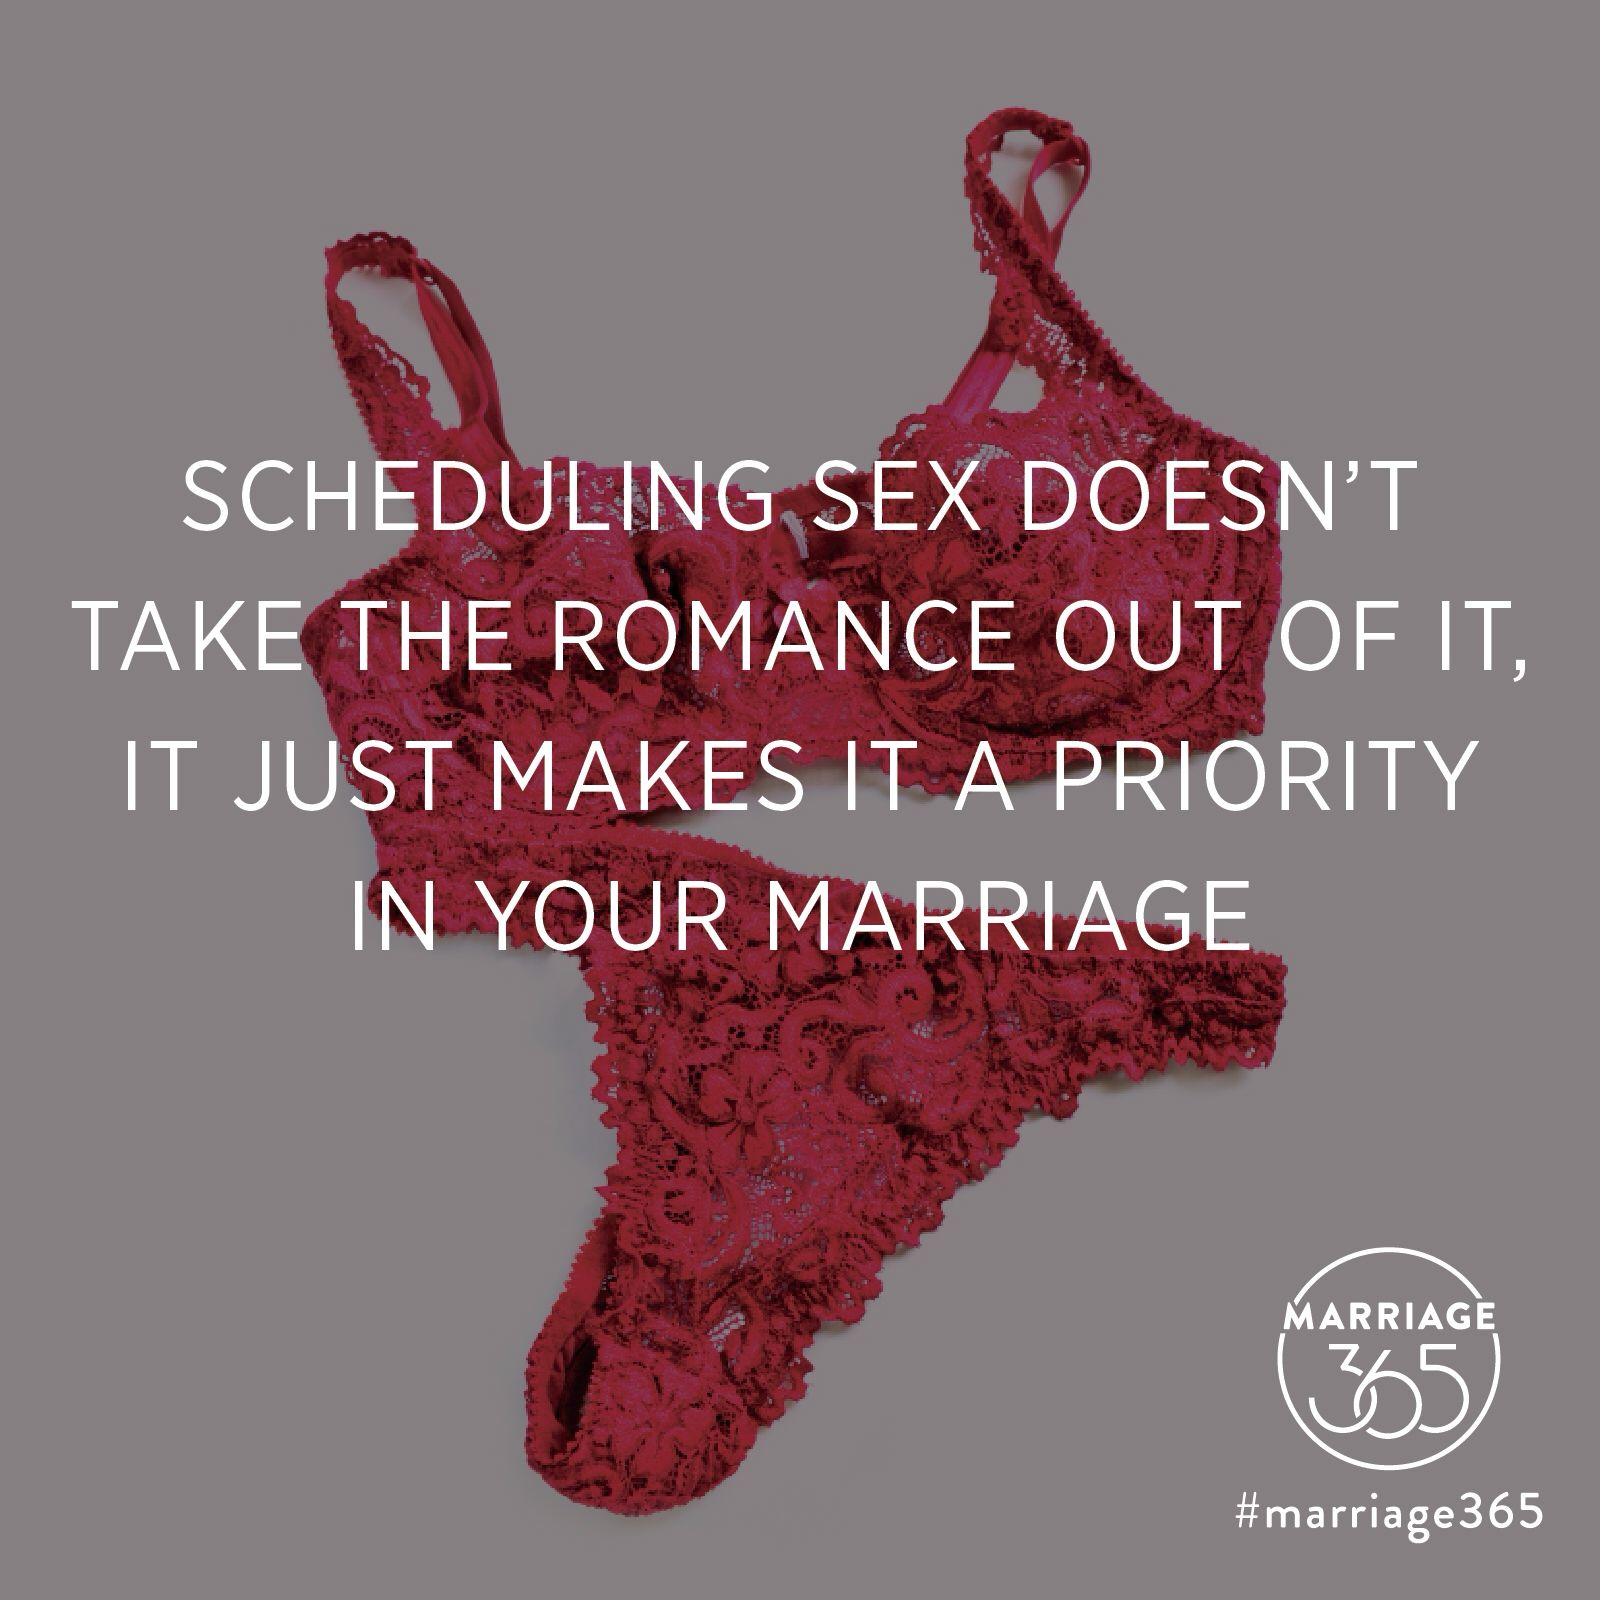 Marriage Advice Marriage Wishes Marriage Wisdom -8165